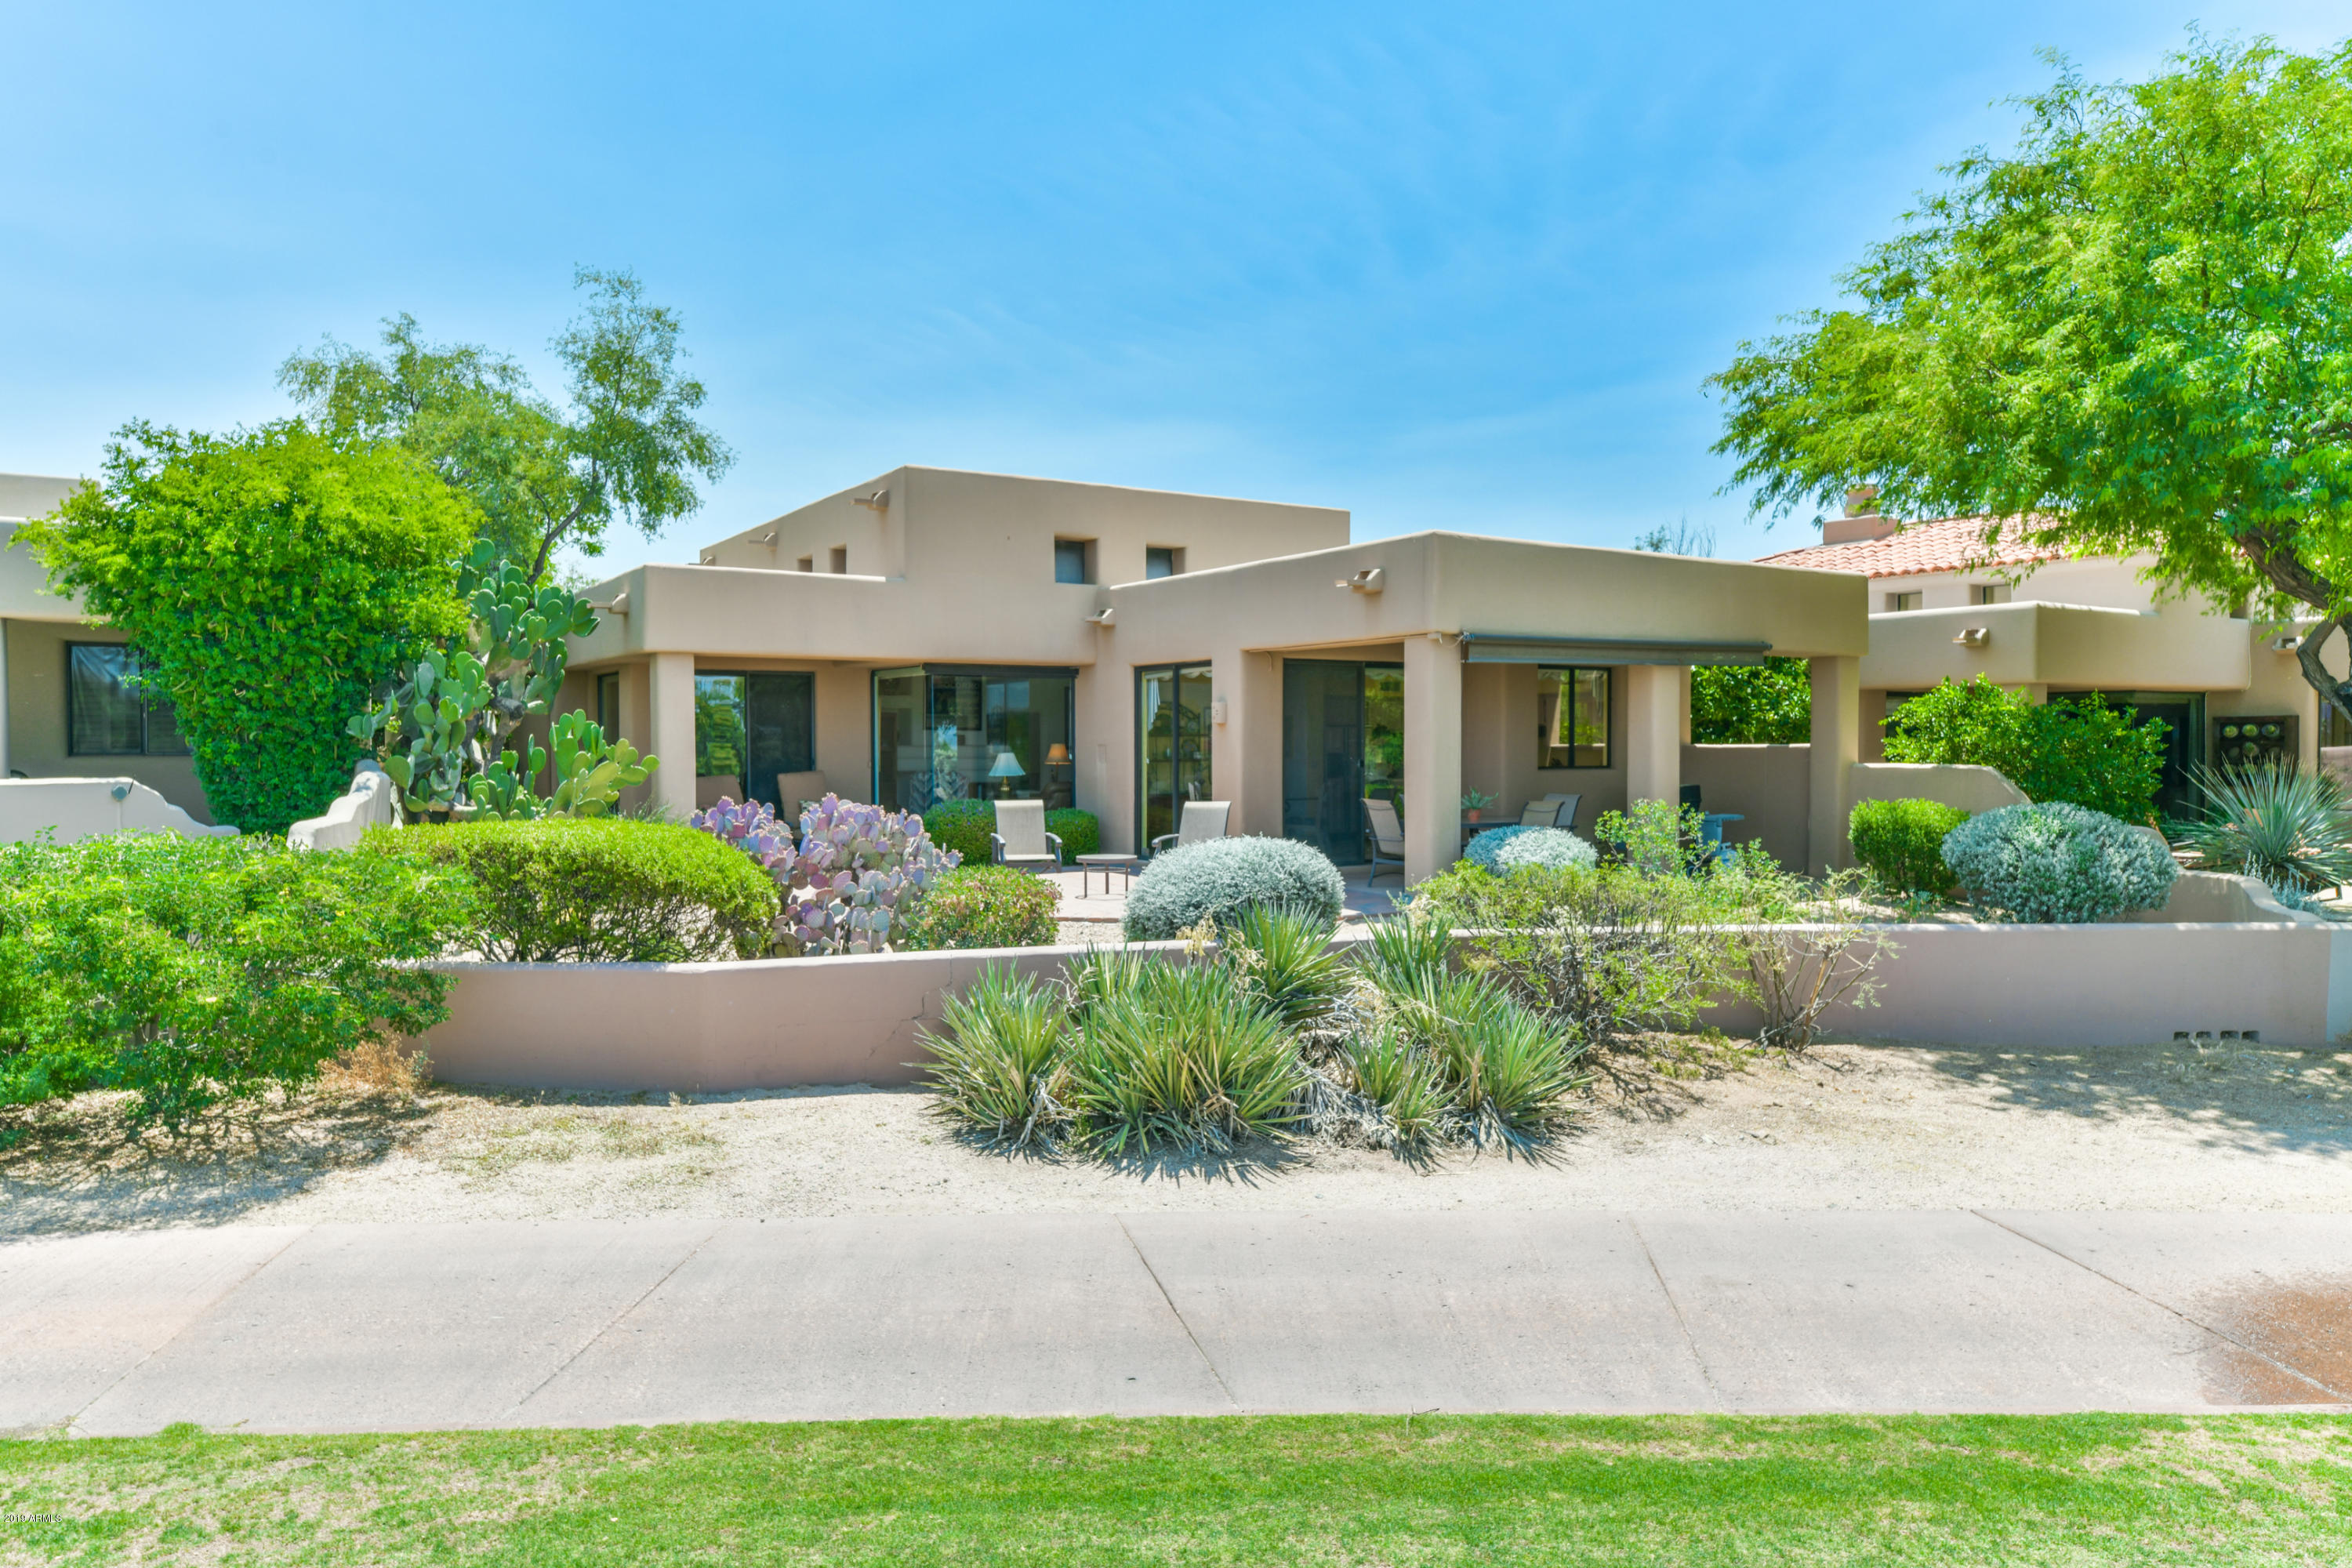 MLS 5945325 7500 E BOULDERS Parkway Unit 7, Scottsdale, AZ 85266 Scottsdale AZ The Boulders